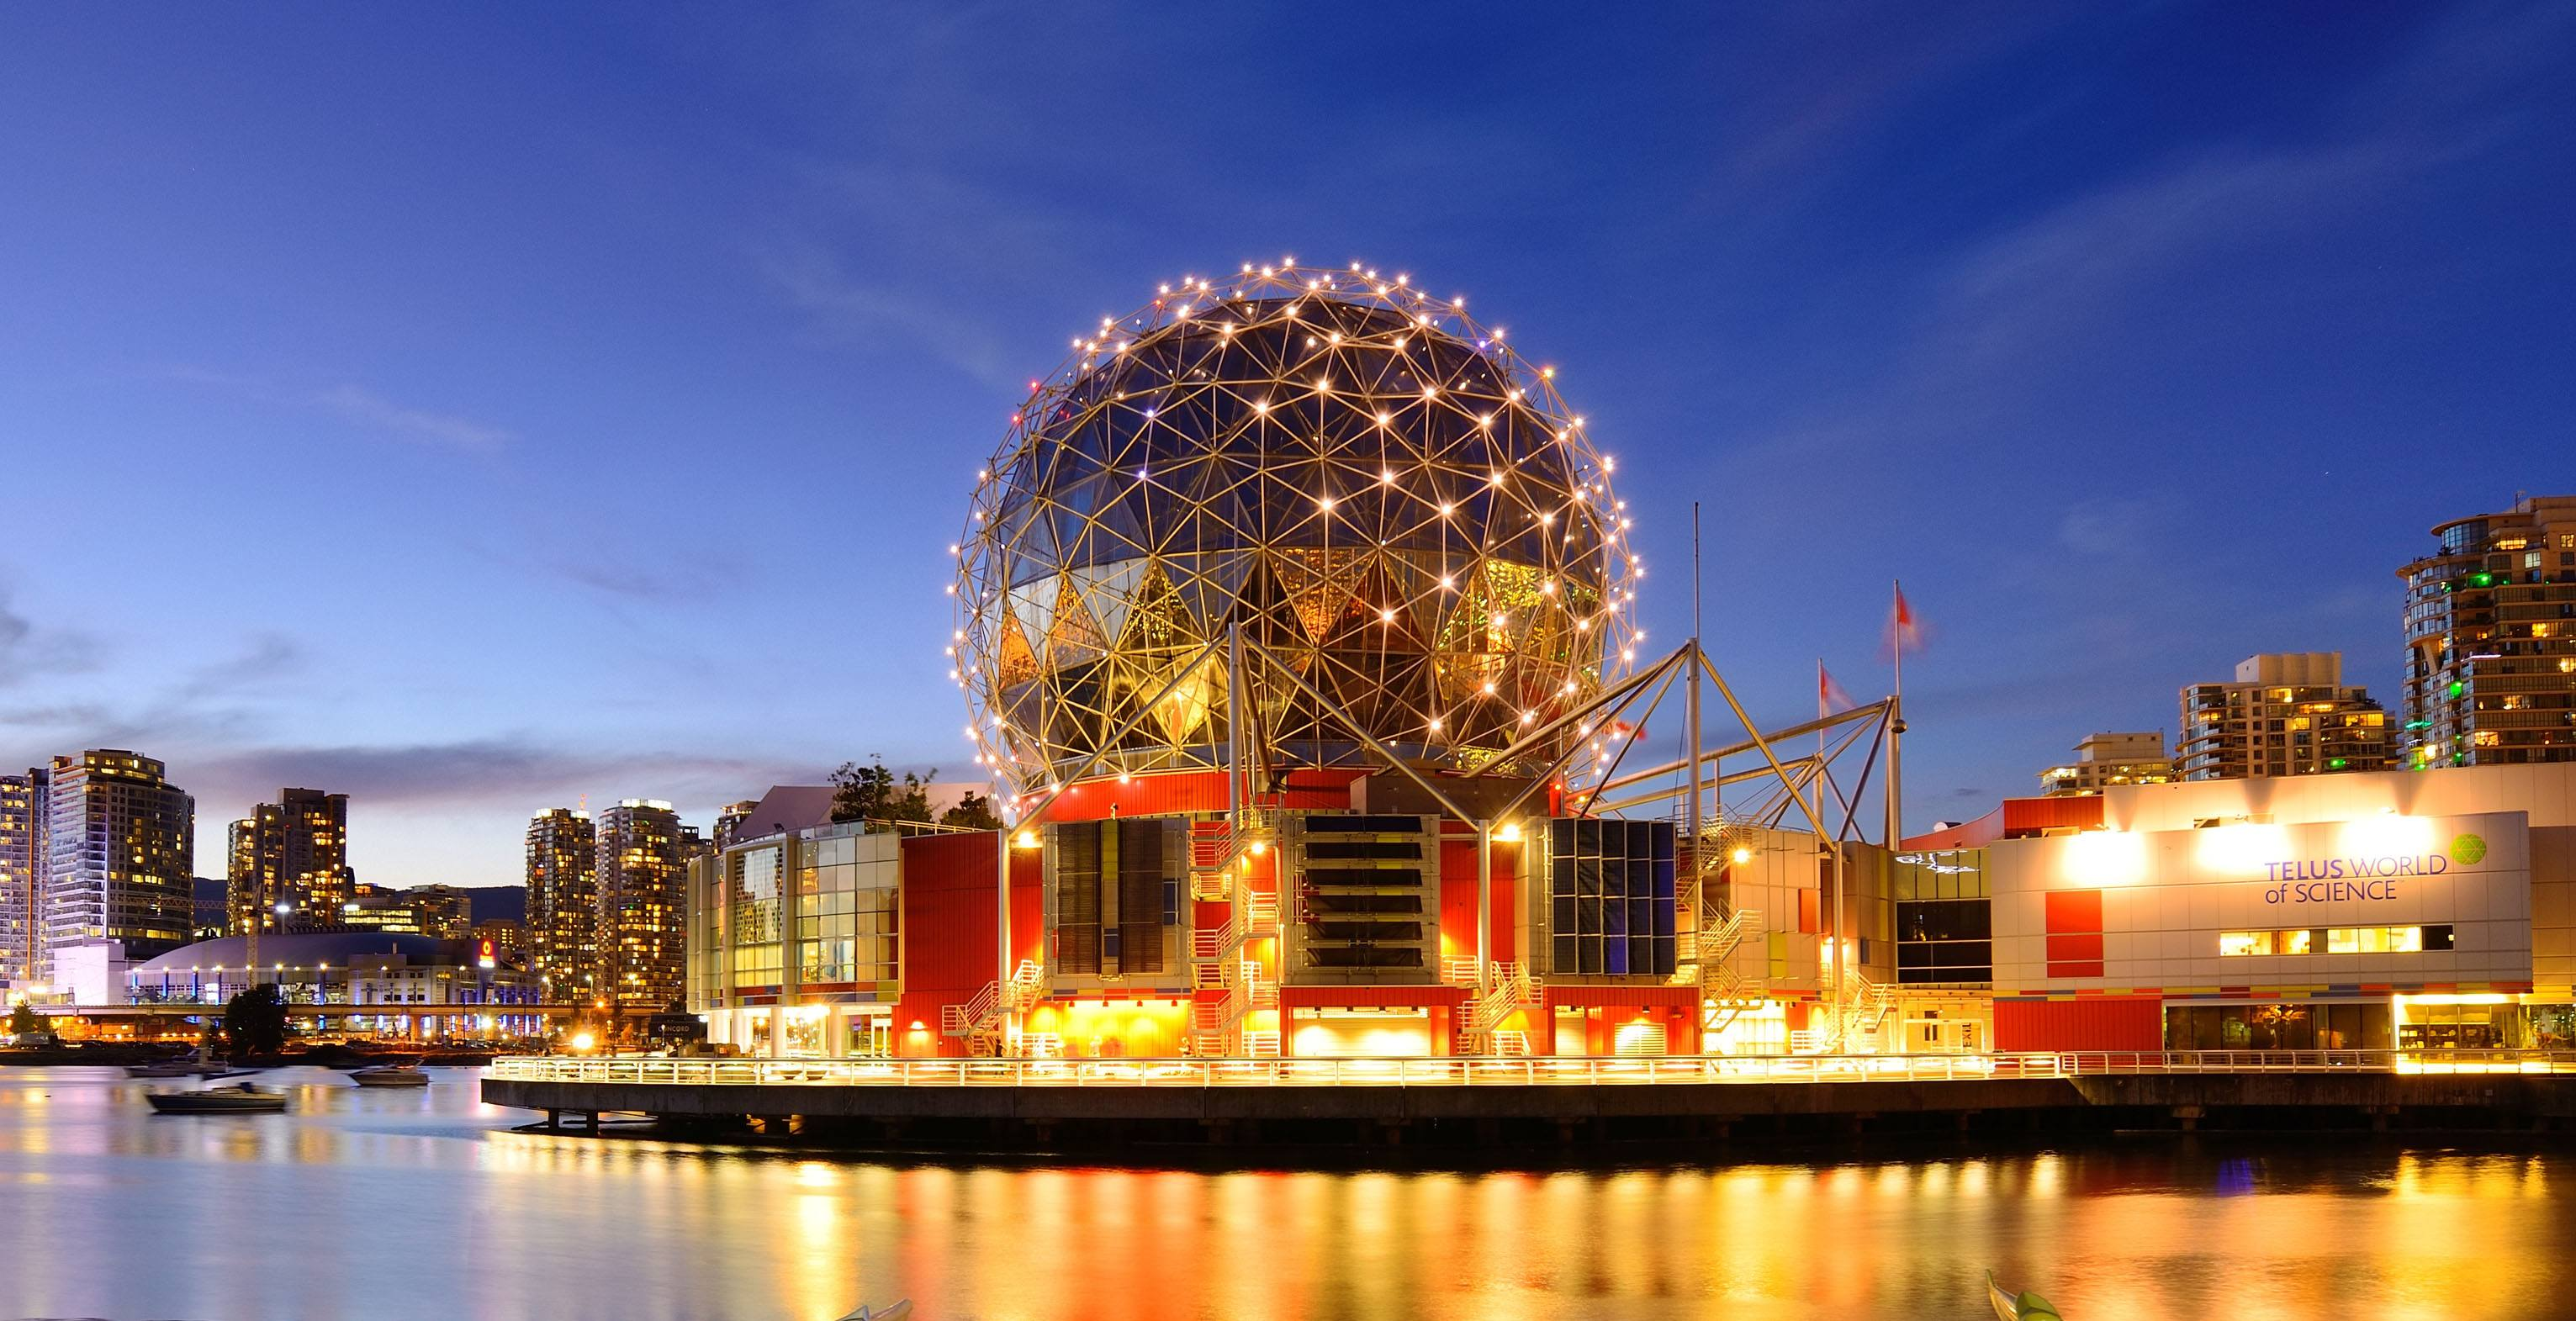 Vancouver Science World Open By Donation Next Tuesday